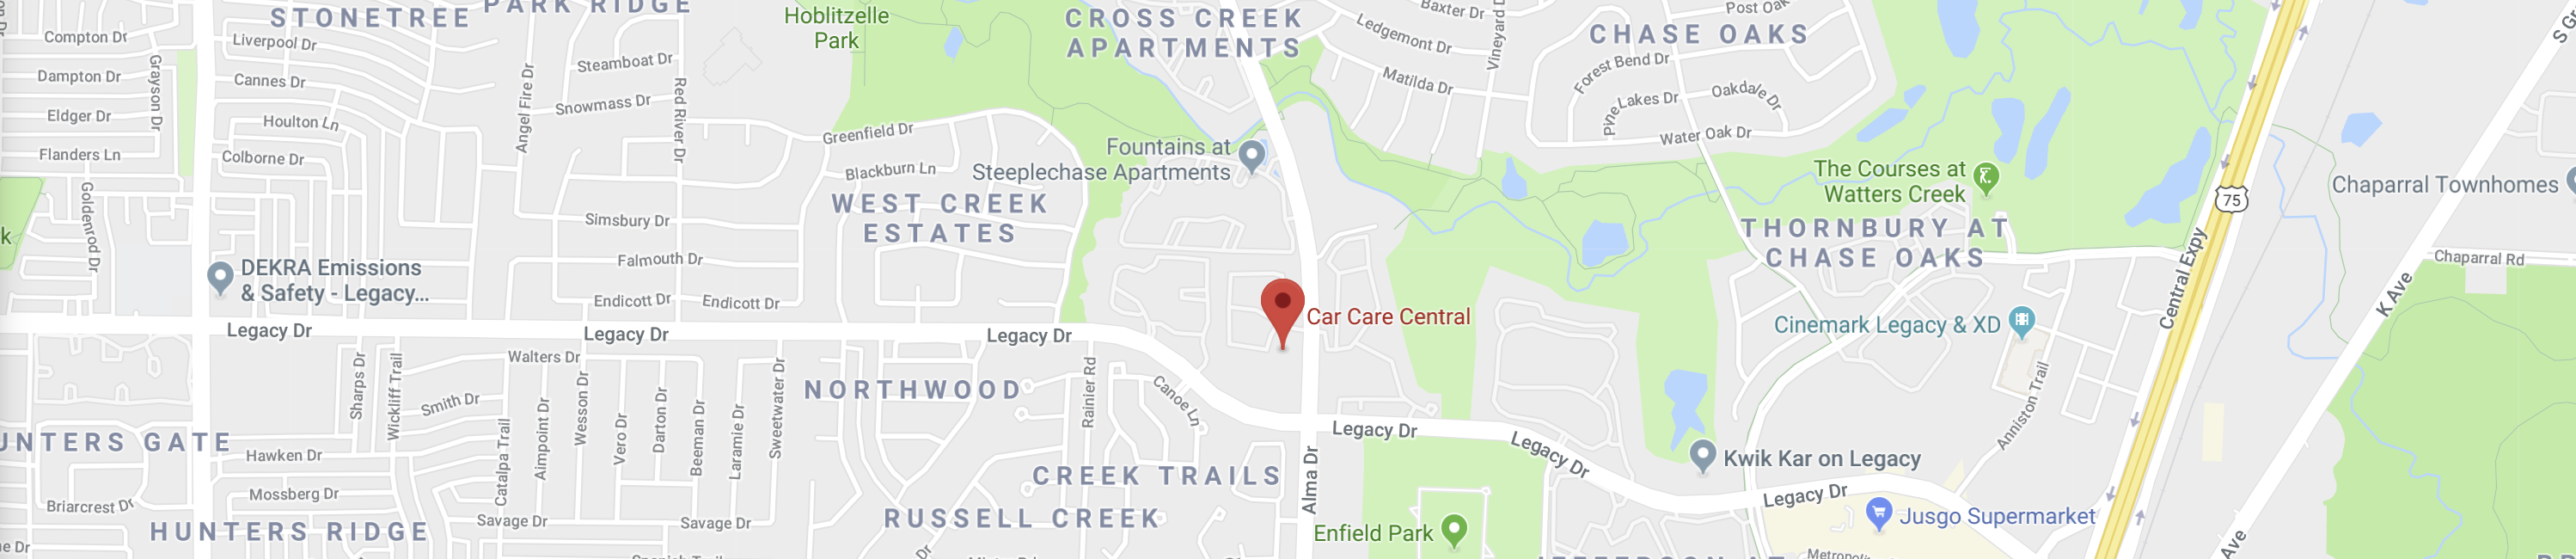 Car Care Central | Plano, TX Page Banner